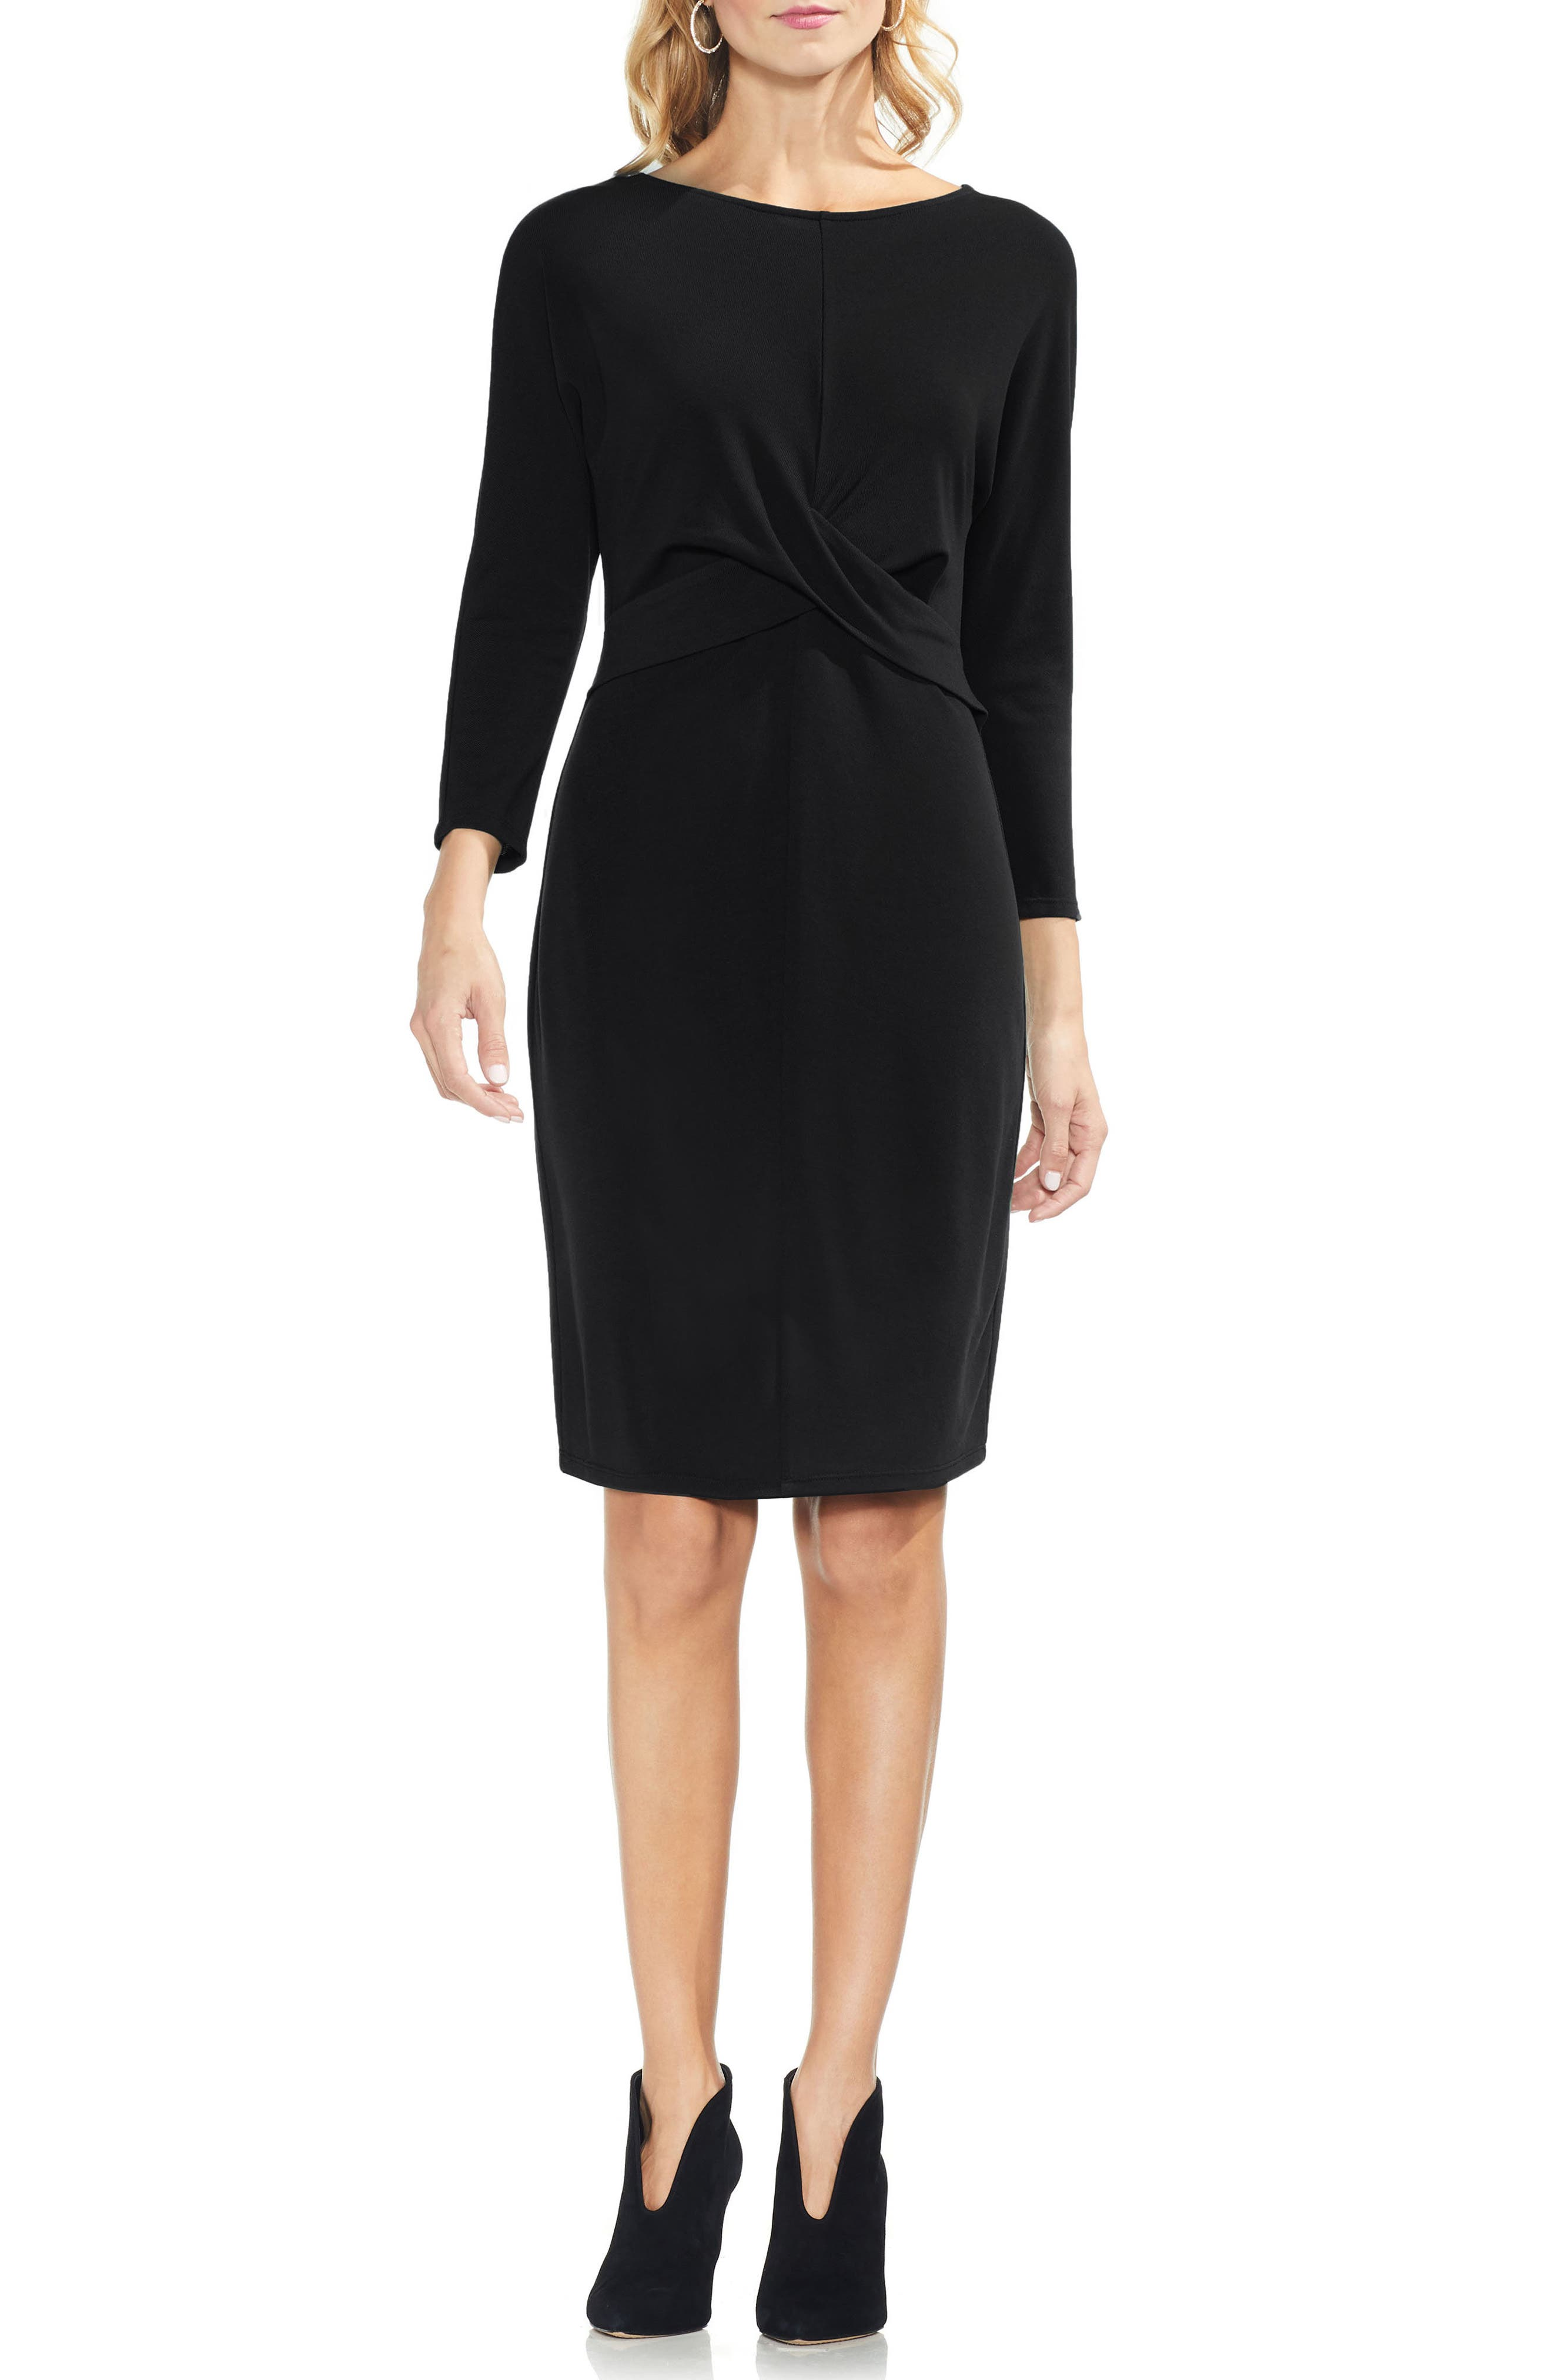 Vince Camuto Cross Front Body-Con Dress, Black